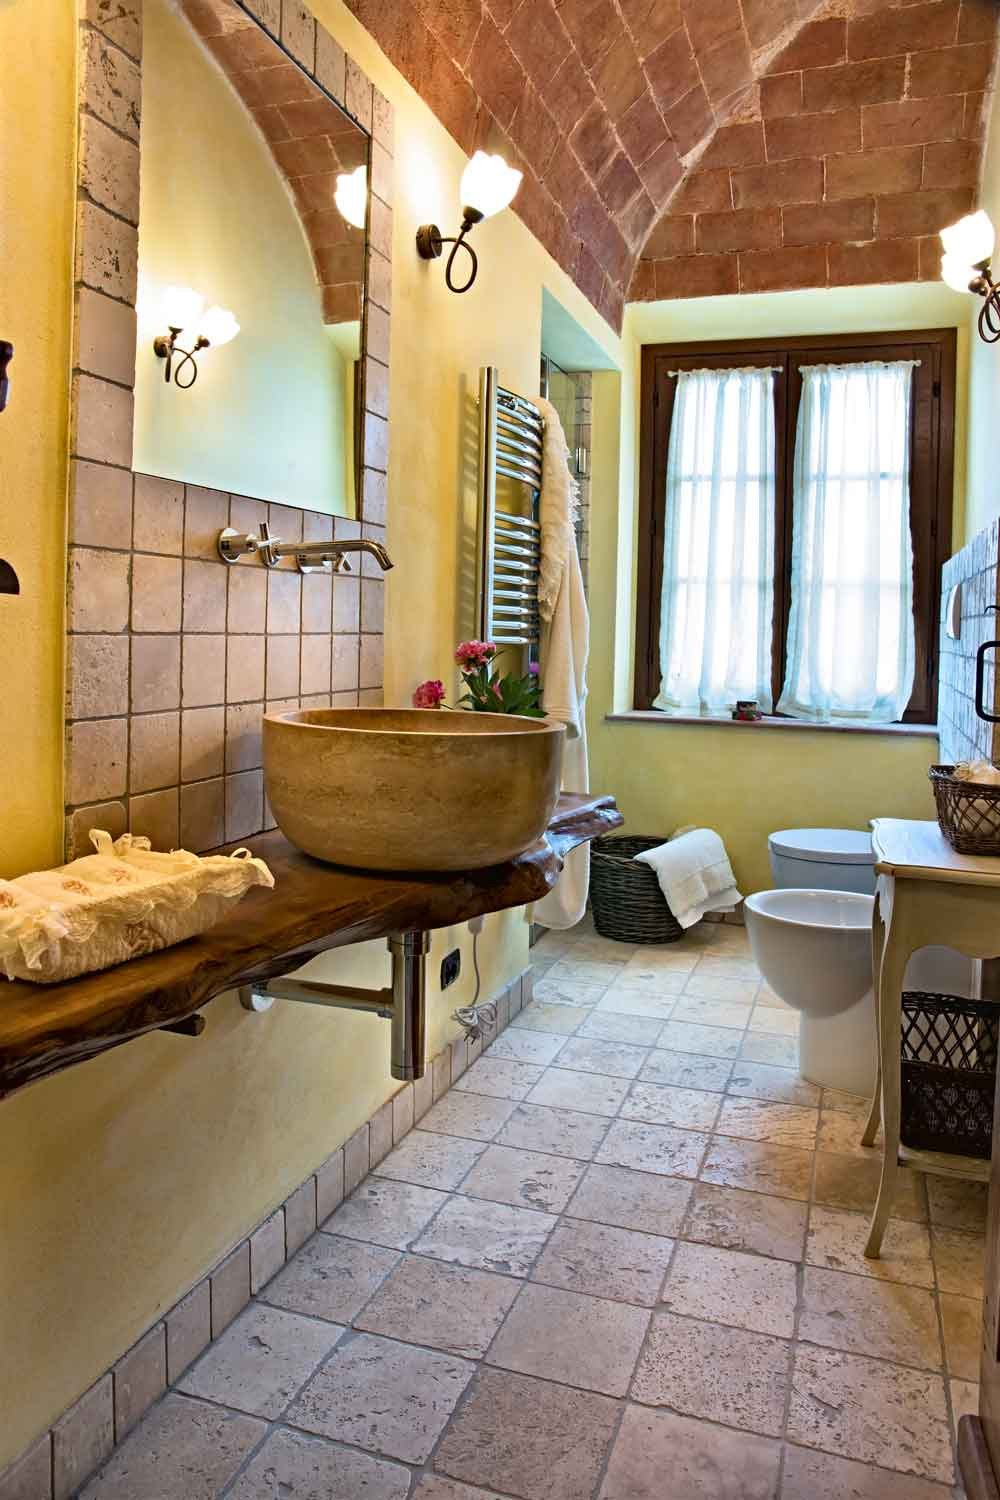 Cristiani travertino piastrelleparetebagno cose di casa - Bagno in travertino ...